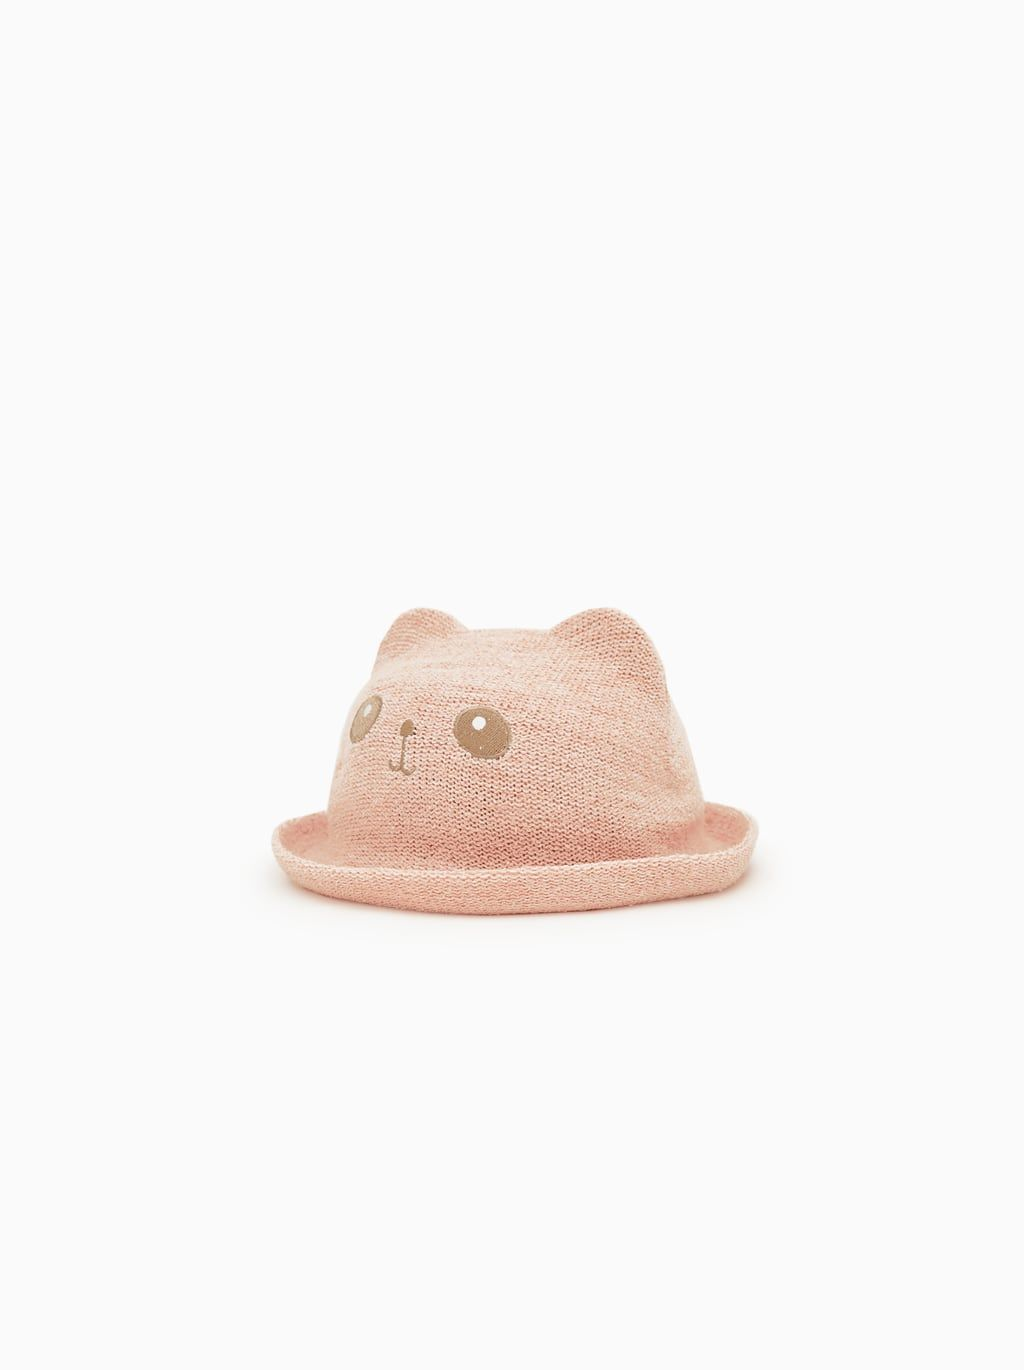 2786df27 STRAW HAT WITH EARS - NEW IN-BABY GIRL | 3 mth - 4 yrs-KIDS | ZARA United  States